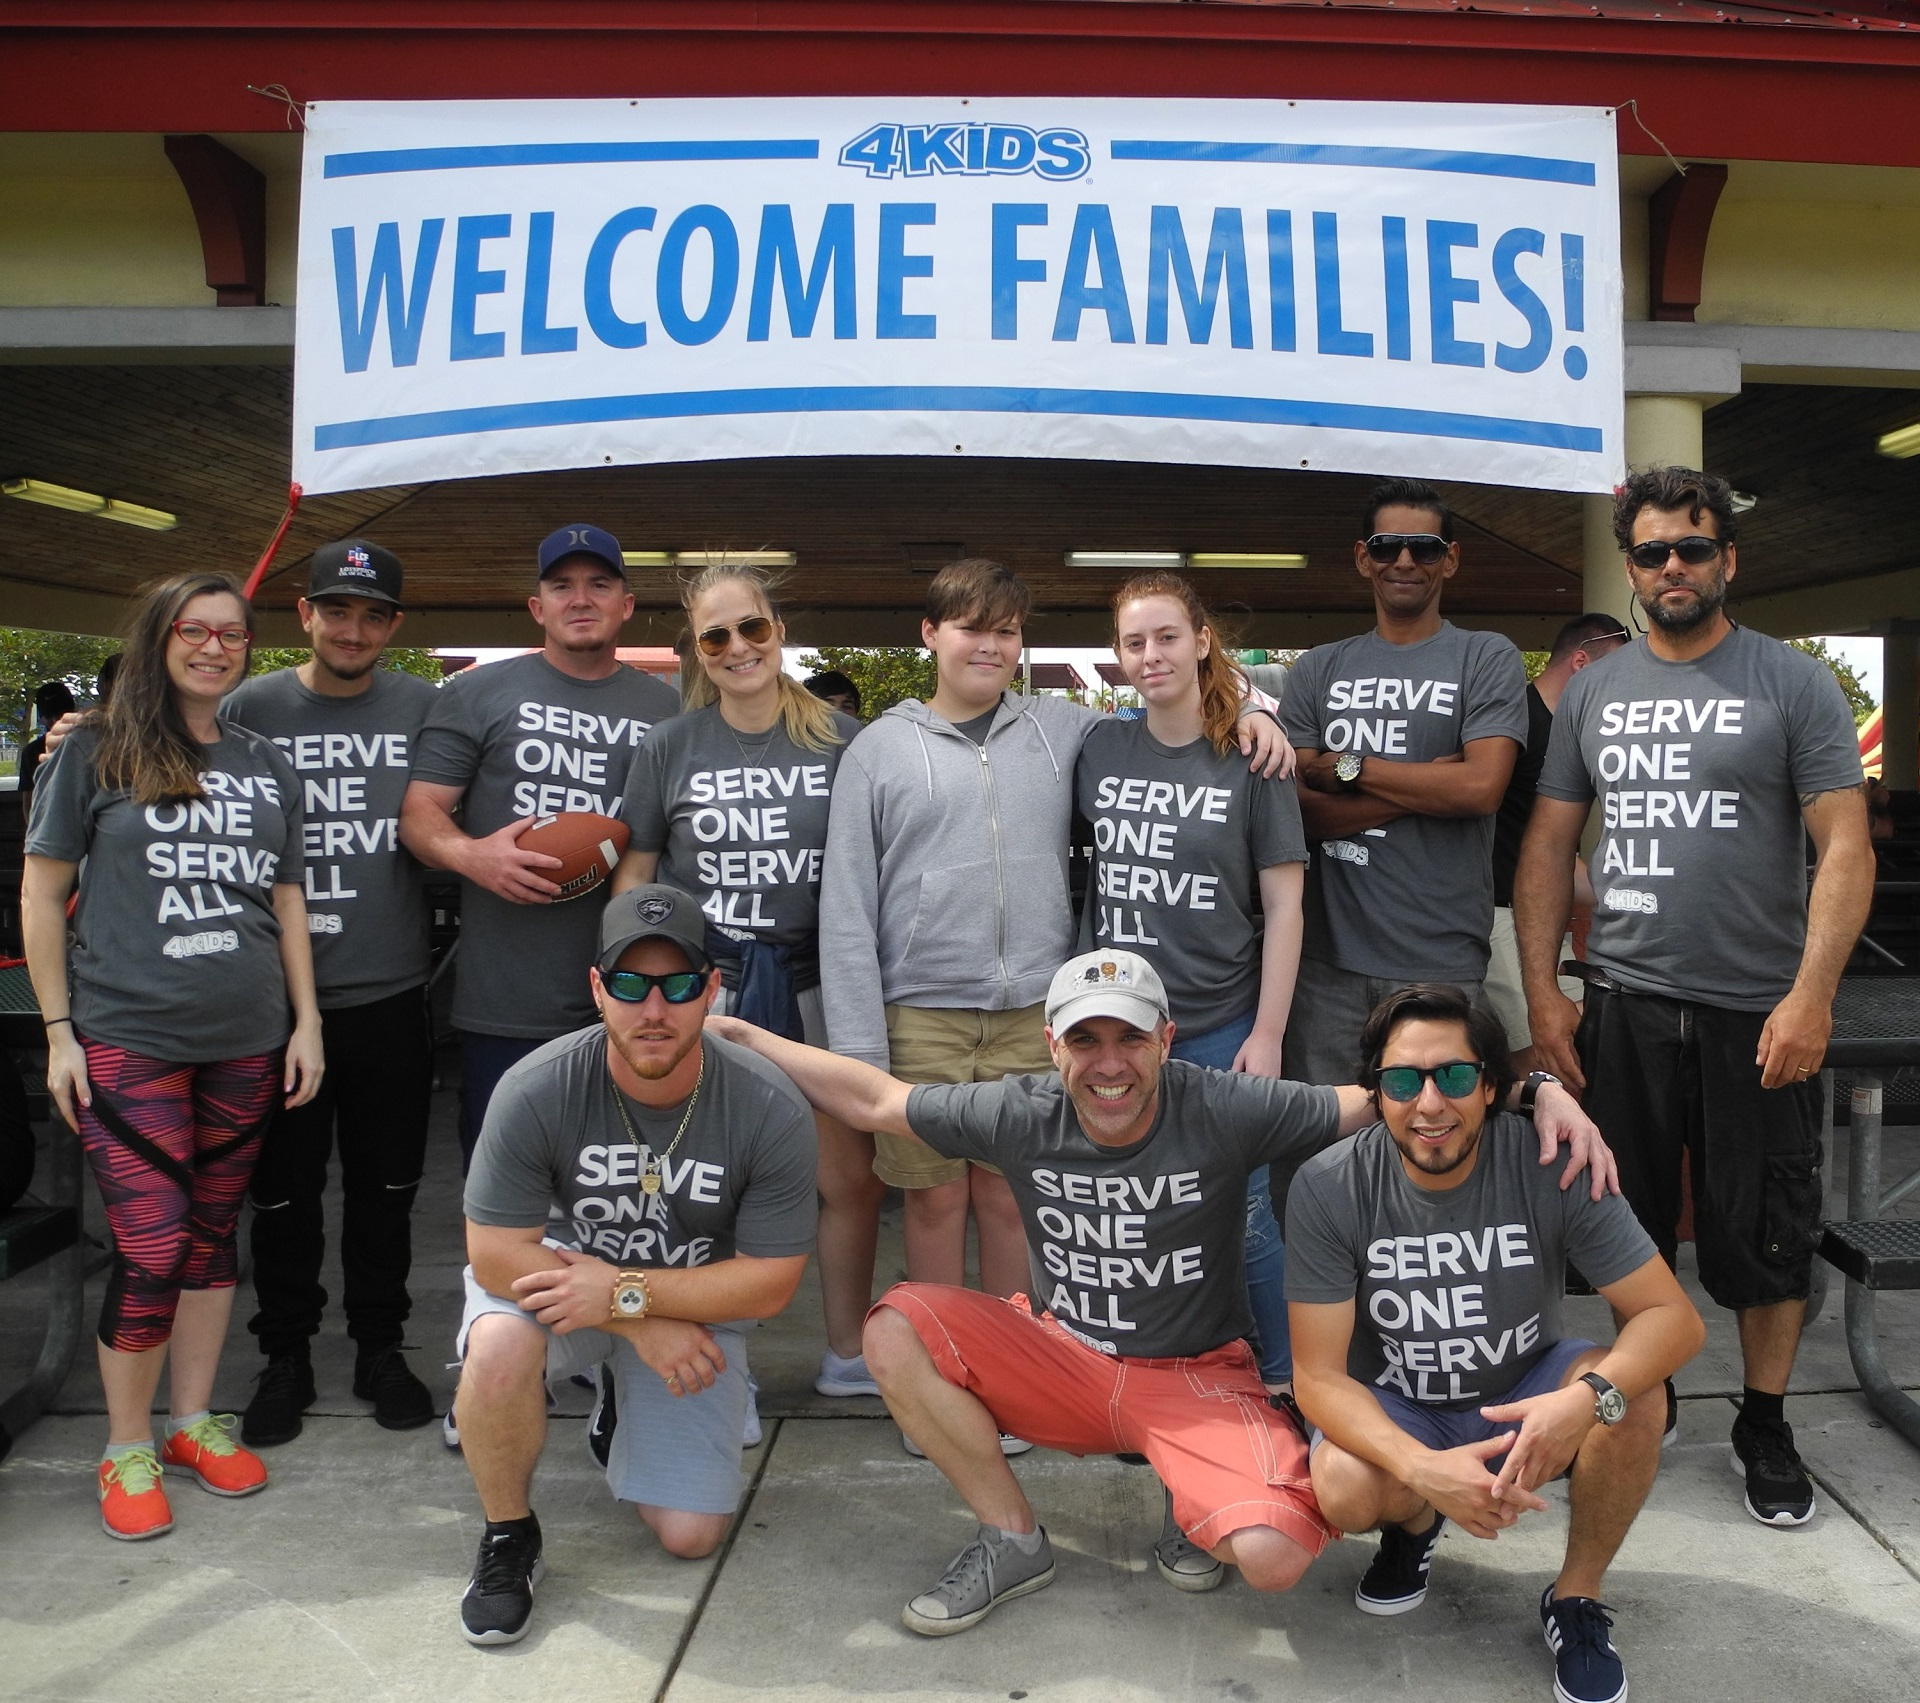 4 Kids Barbecue with employees posing under welcome families sign